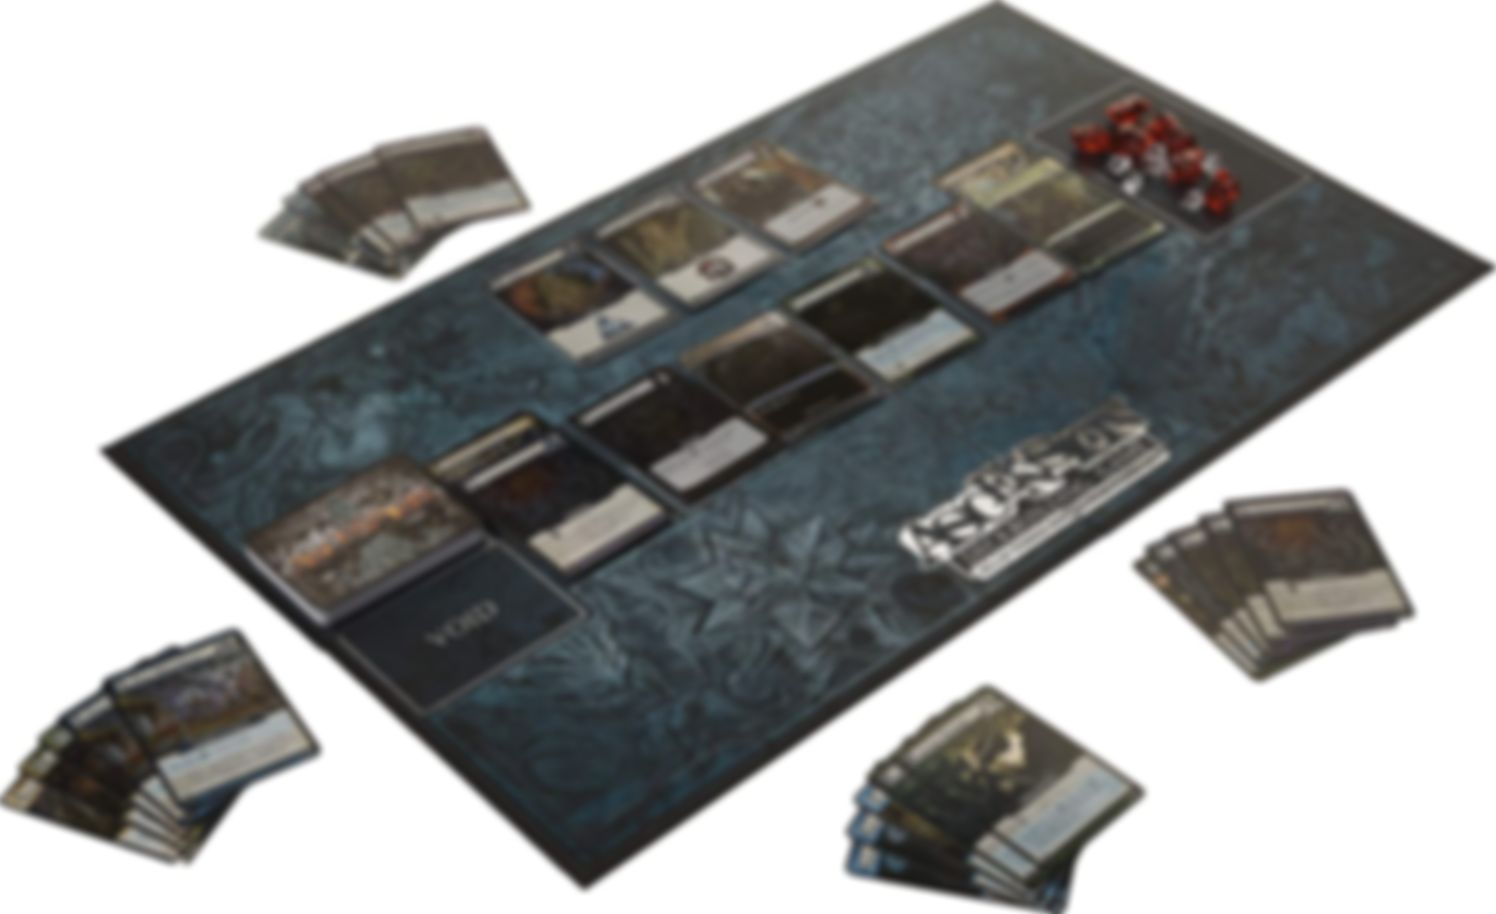 Ascension: Year Three Collector's Edition components